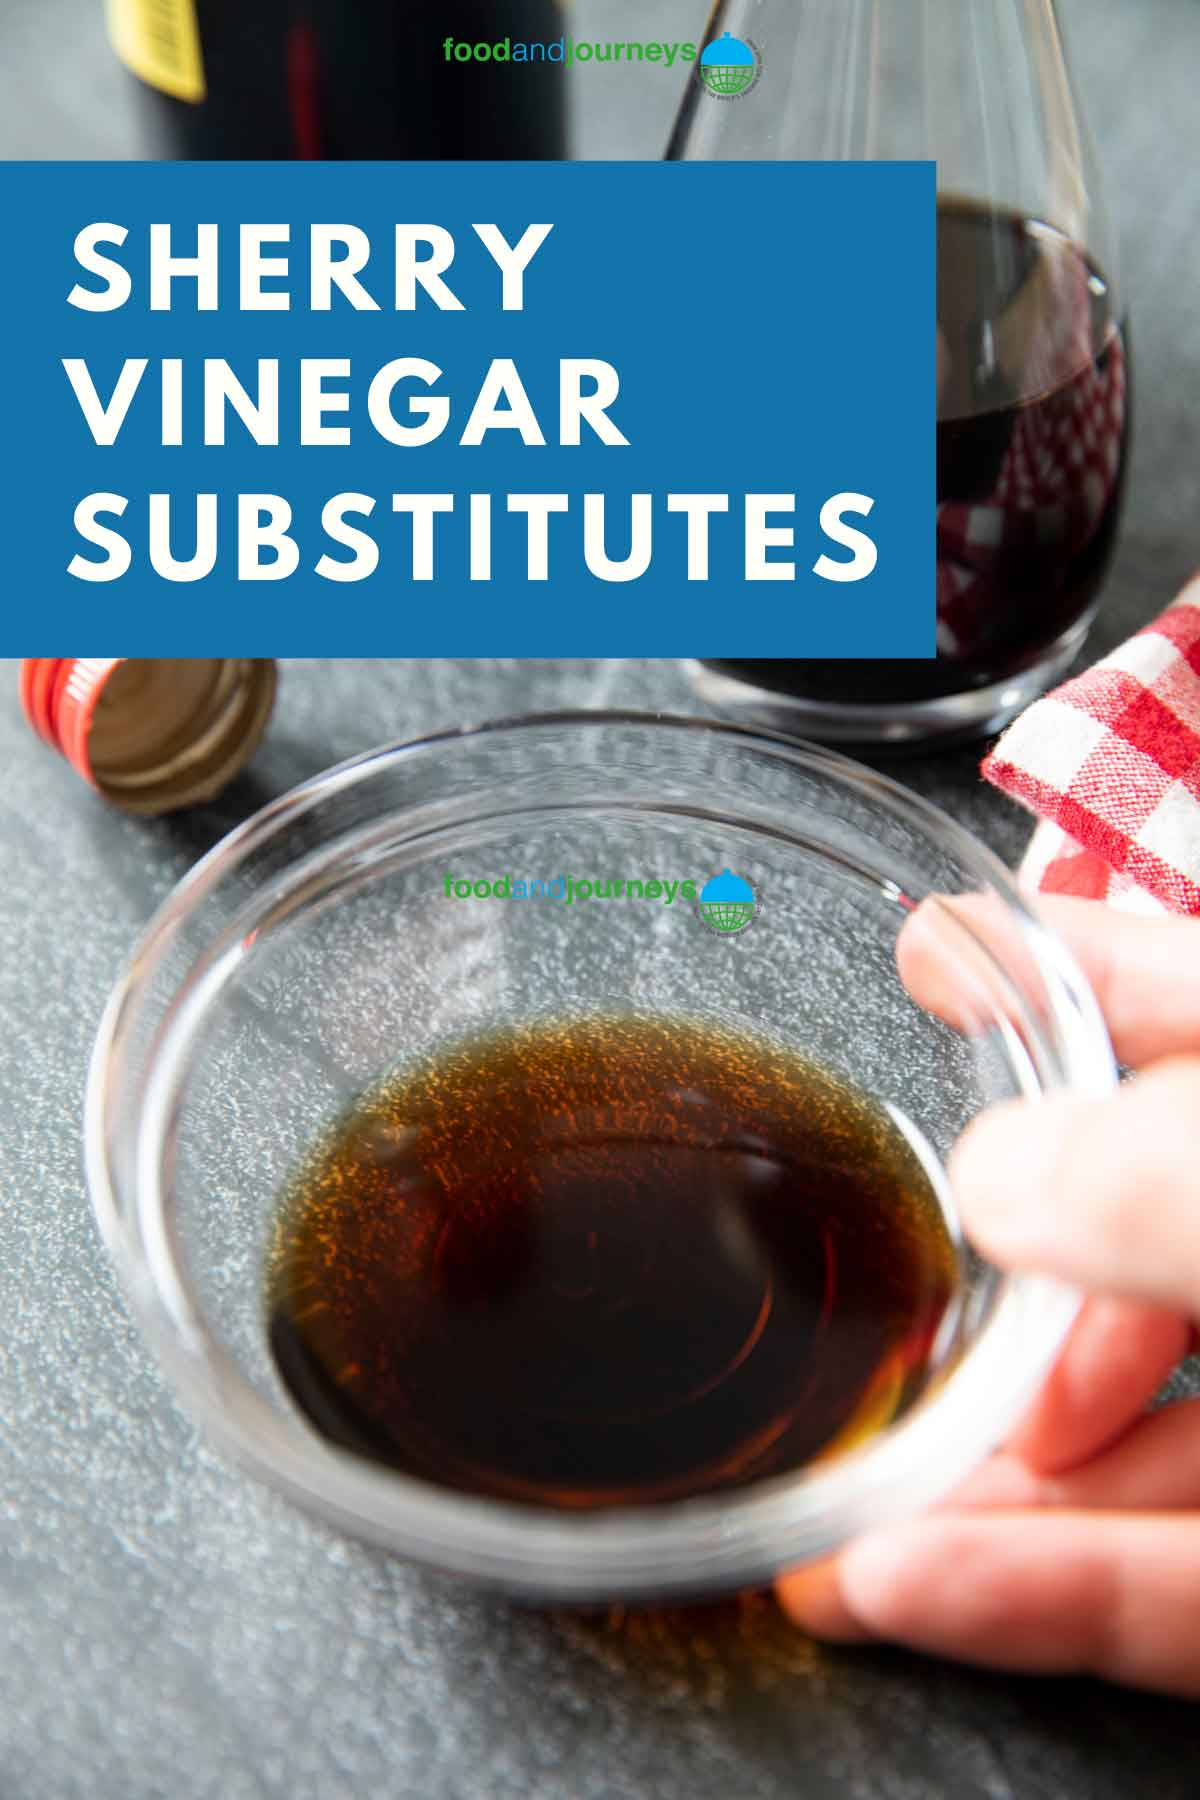 Main image for Best Sherry Vinegar Substitutes showing sherry vinegar poured into a small bowl.